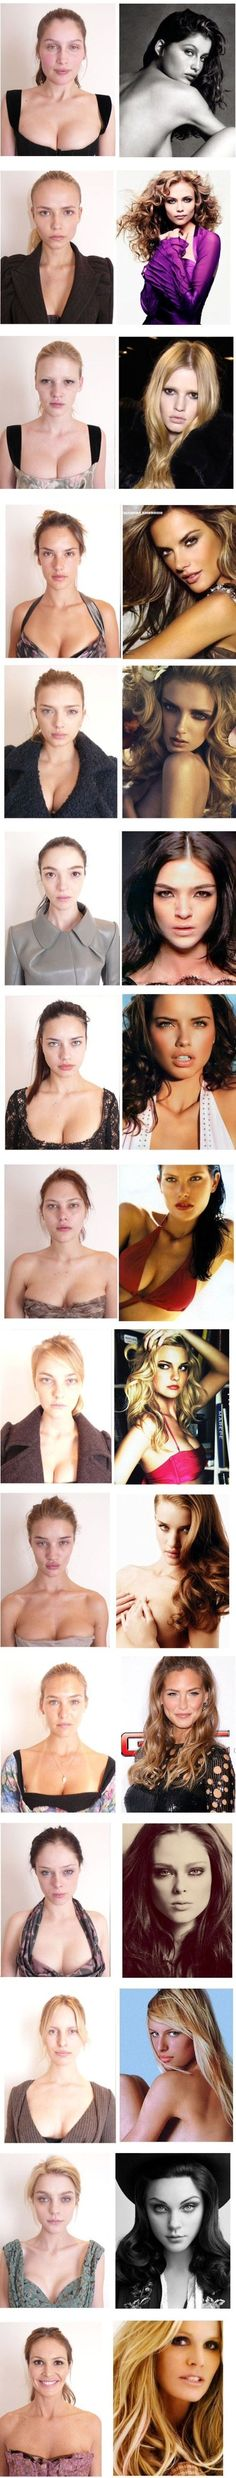 Celebrities with no makeup!! Ladies, let this be an example. Those super models who always look super, only look that way when painted up and air brushed. Gentlemen, we are all married to super models.